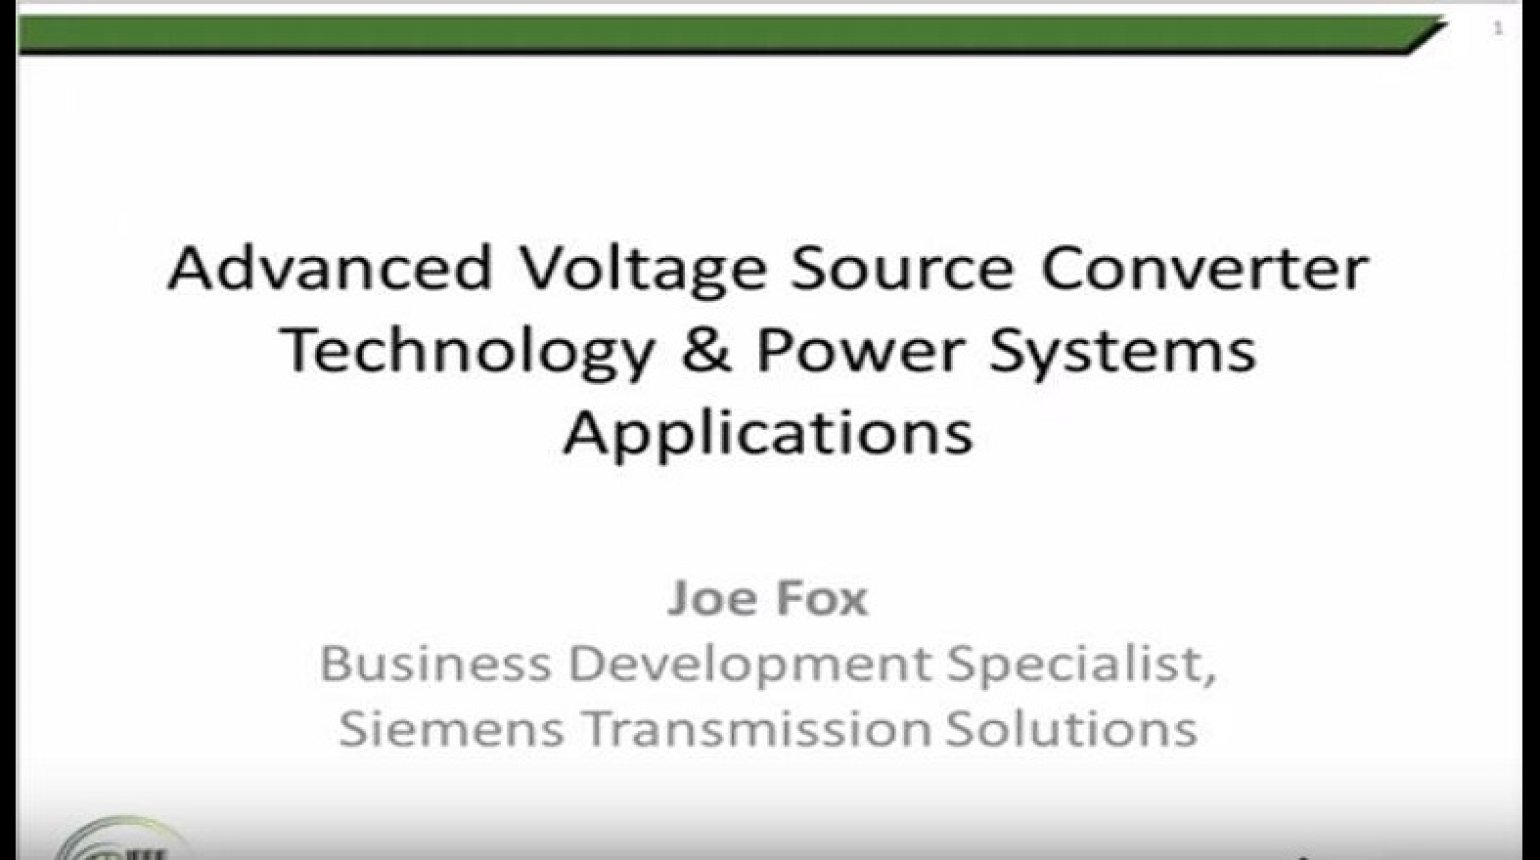 Advanced Voltage Source Converter Technology and Power Systems Applications